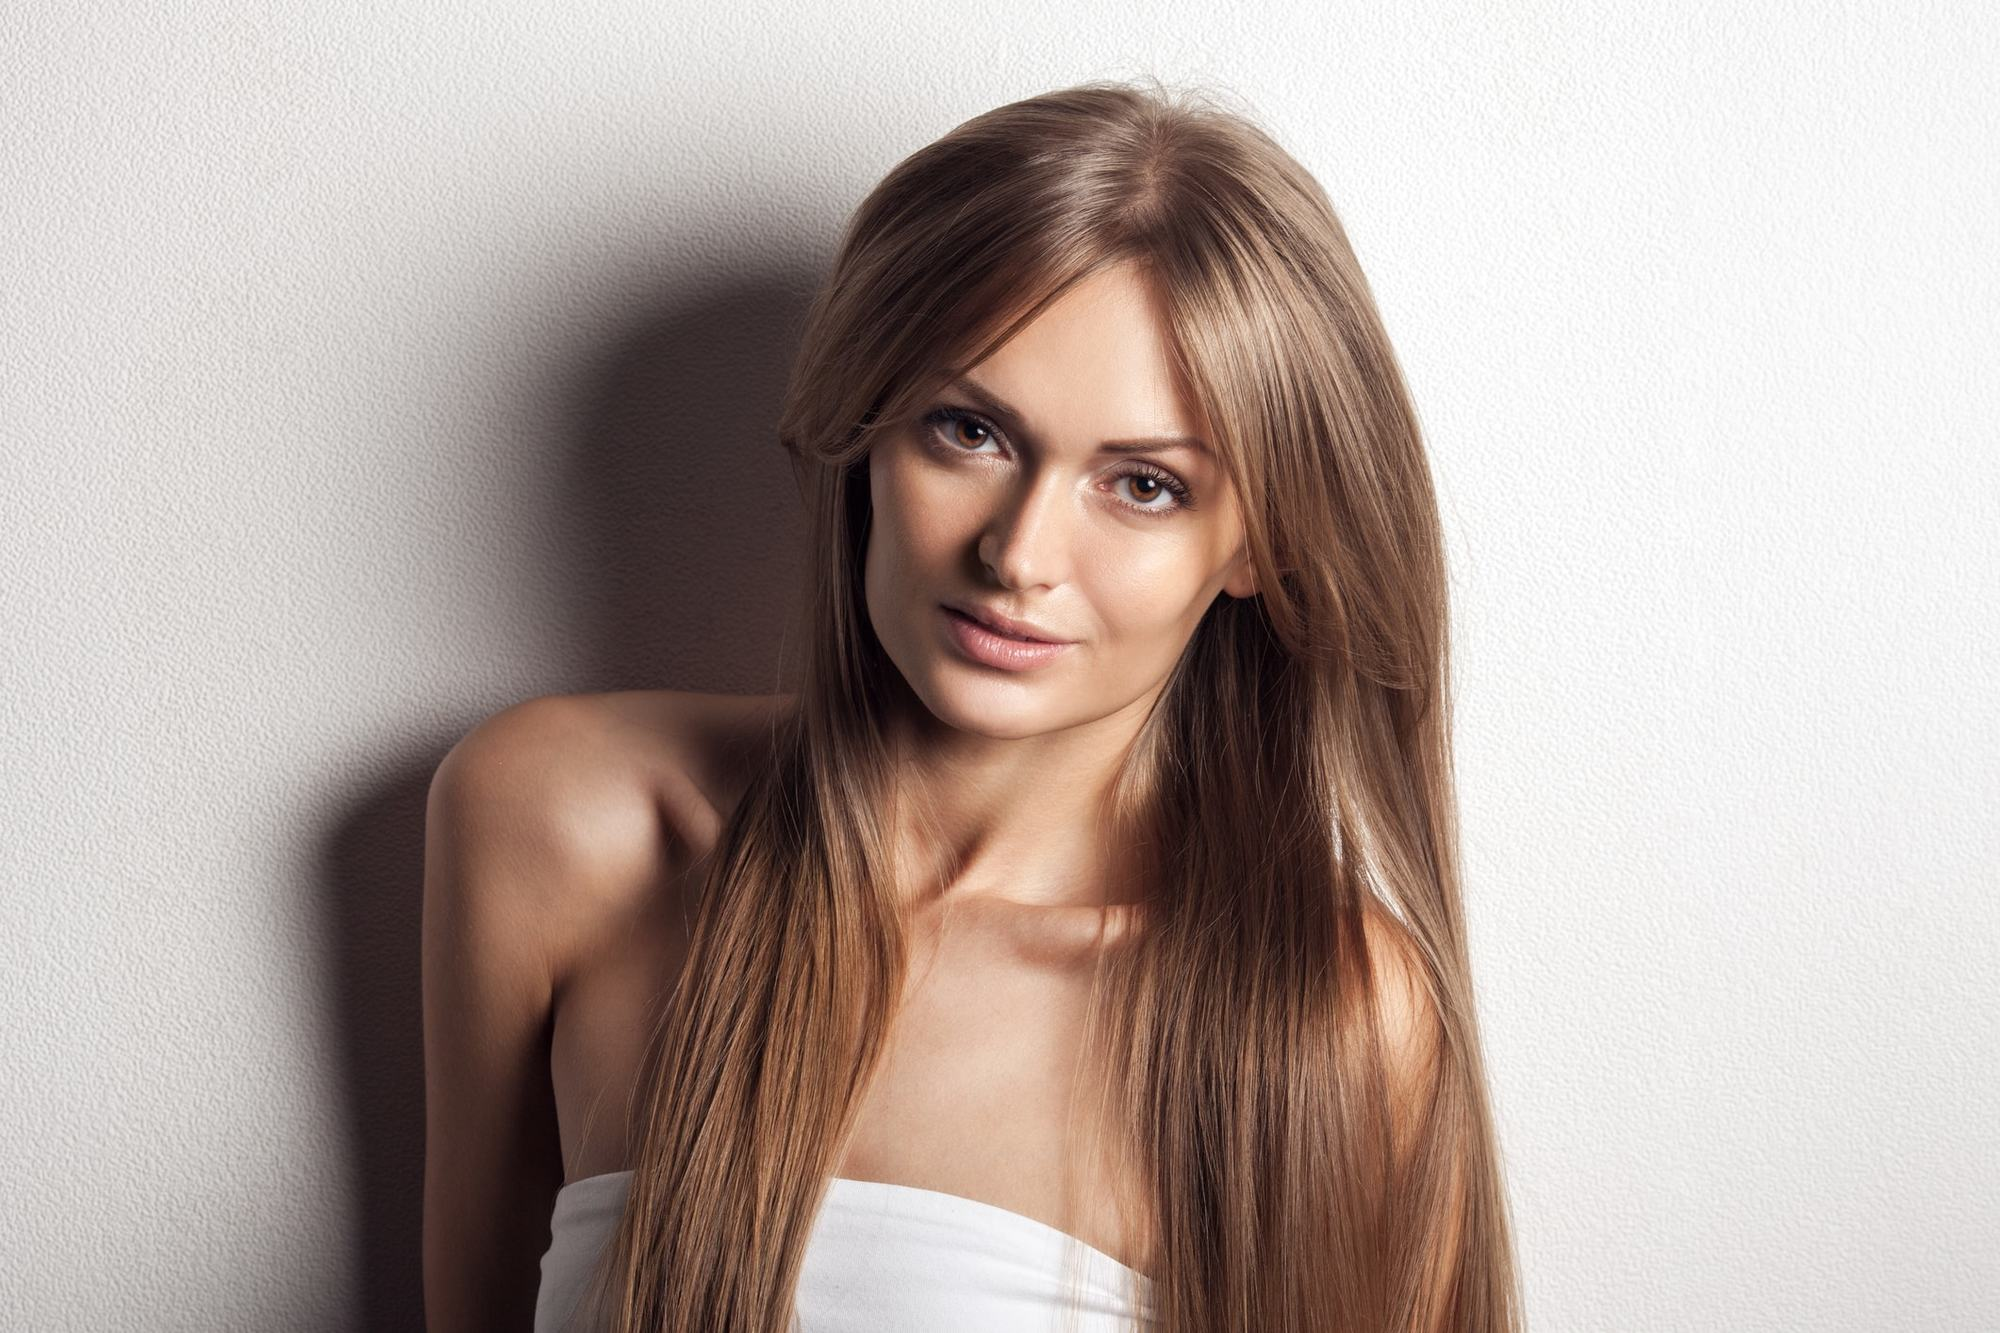 Long Hair With Side Bangs 10 Adorable Ways To Style The Look